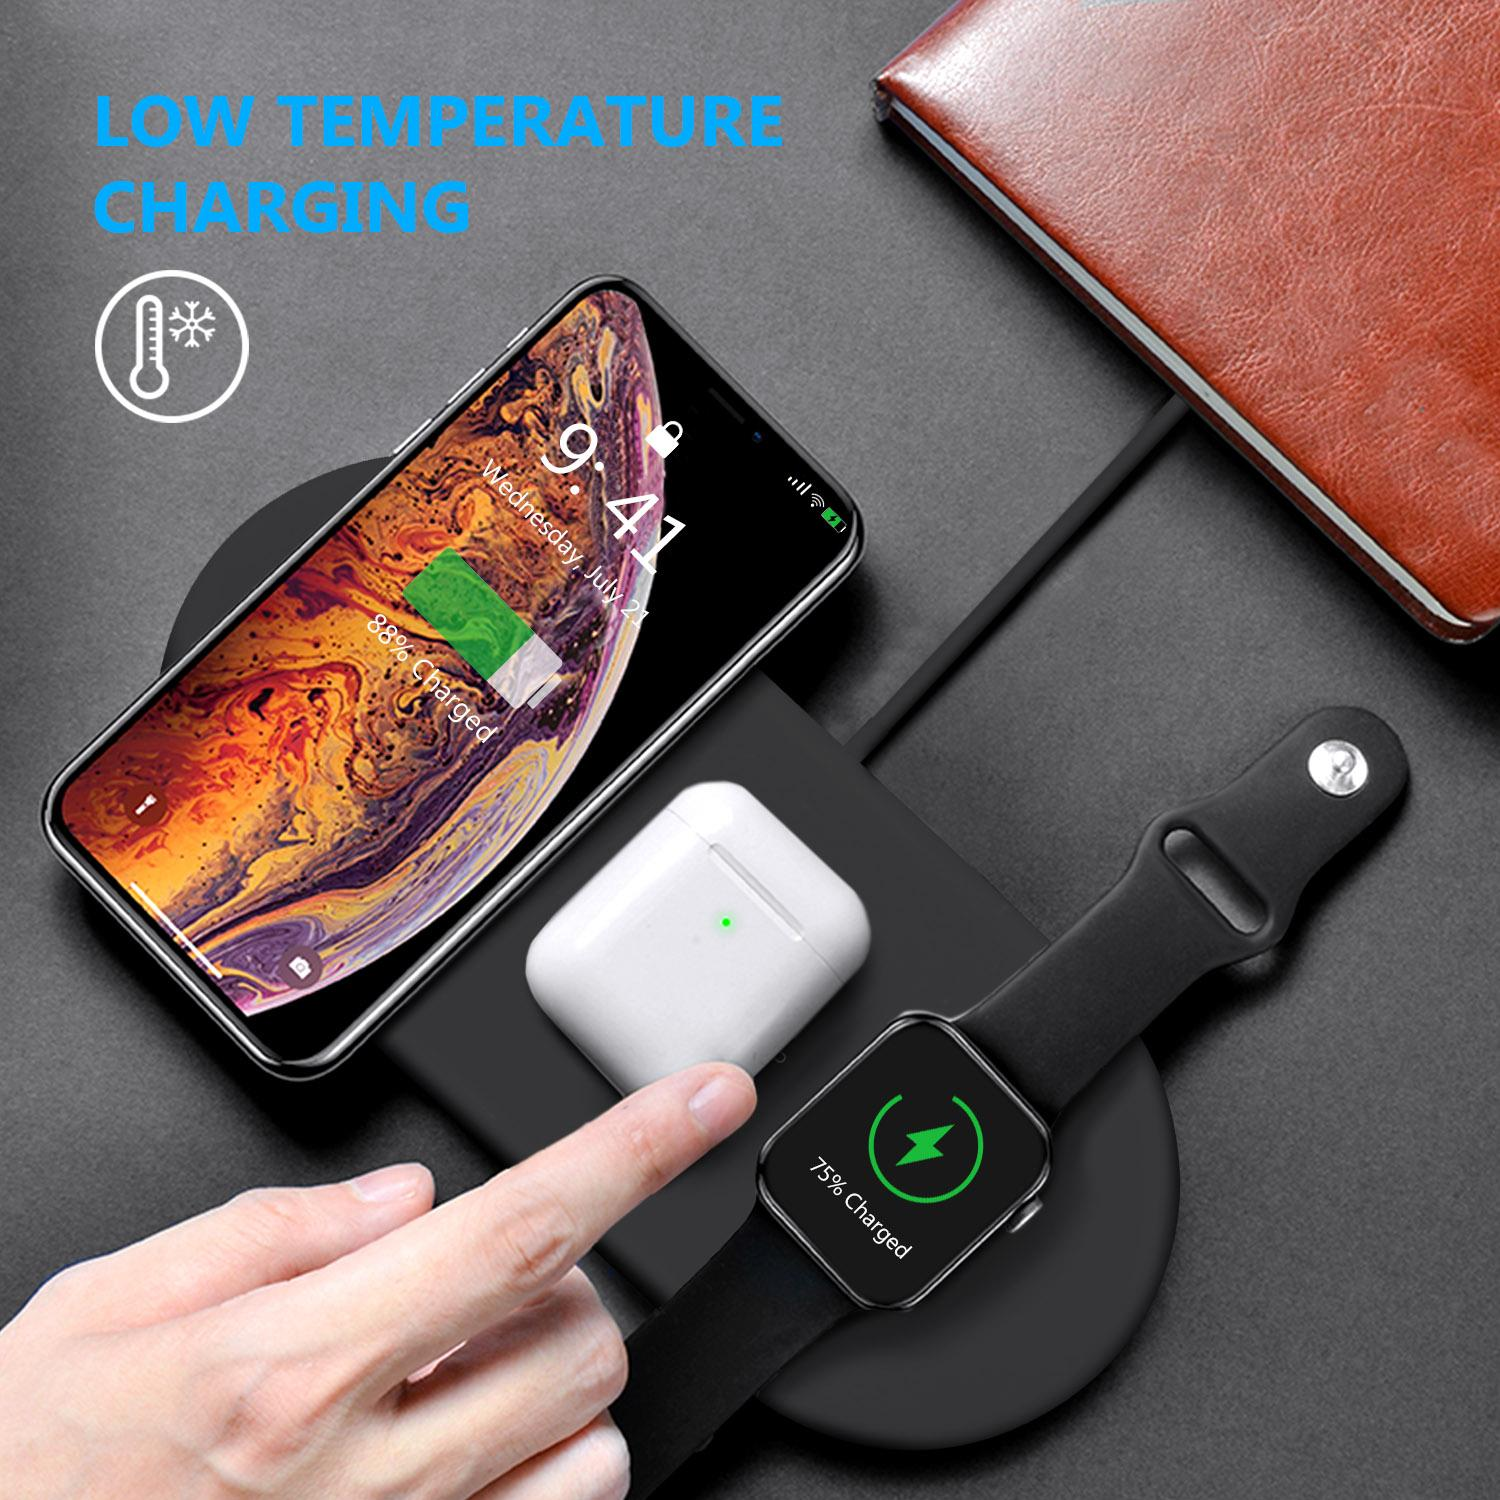 [SG Seller] 3in1 Qi Wireless Charger for Apple Watch,Airpods 2,iPhone 11/11 Pro/11 Pro Max/XS Max / XR /XS/ X / 8/8 Plus,Samsung Galaxy/Huawei/Xiaomi